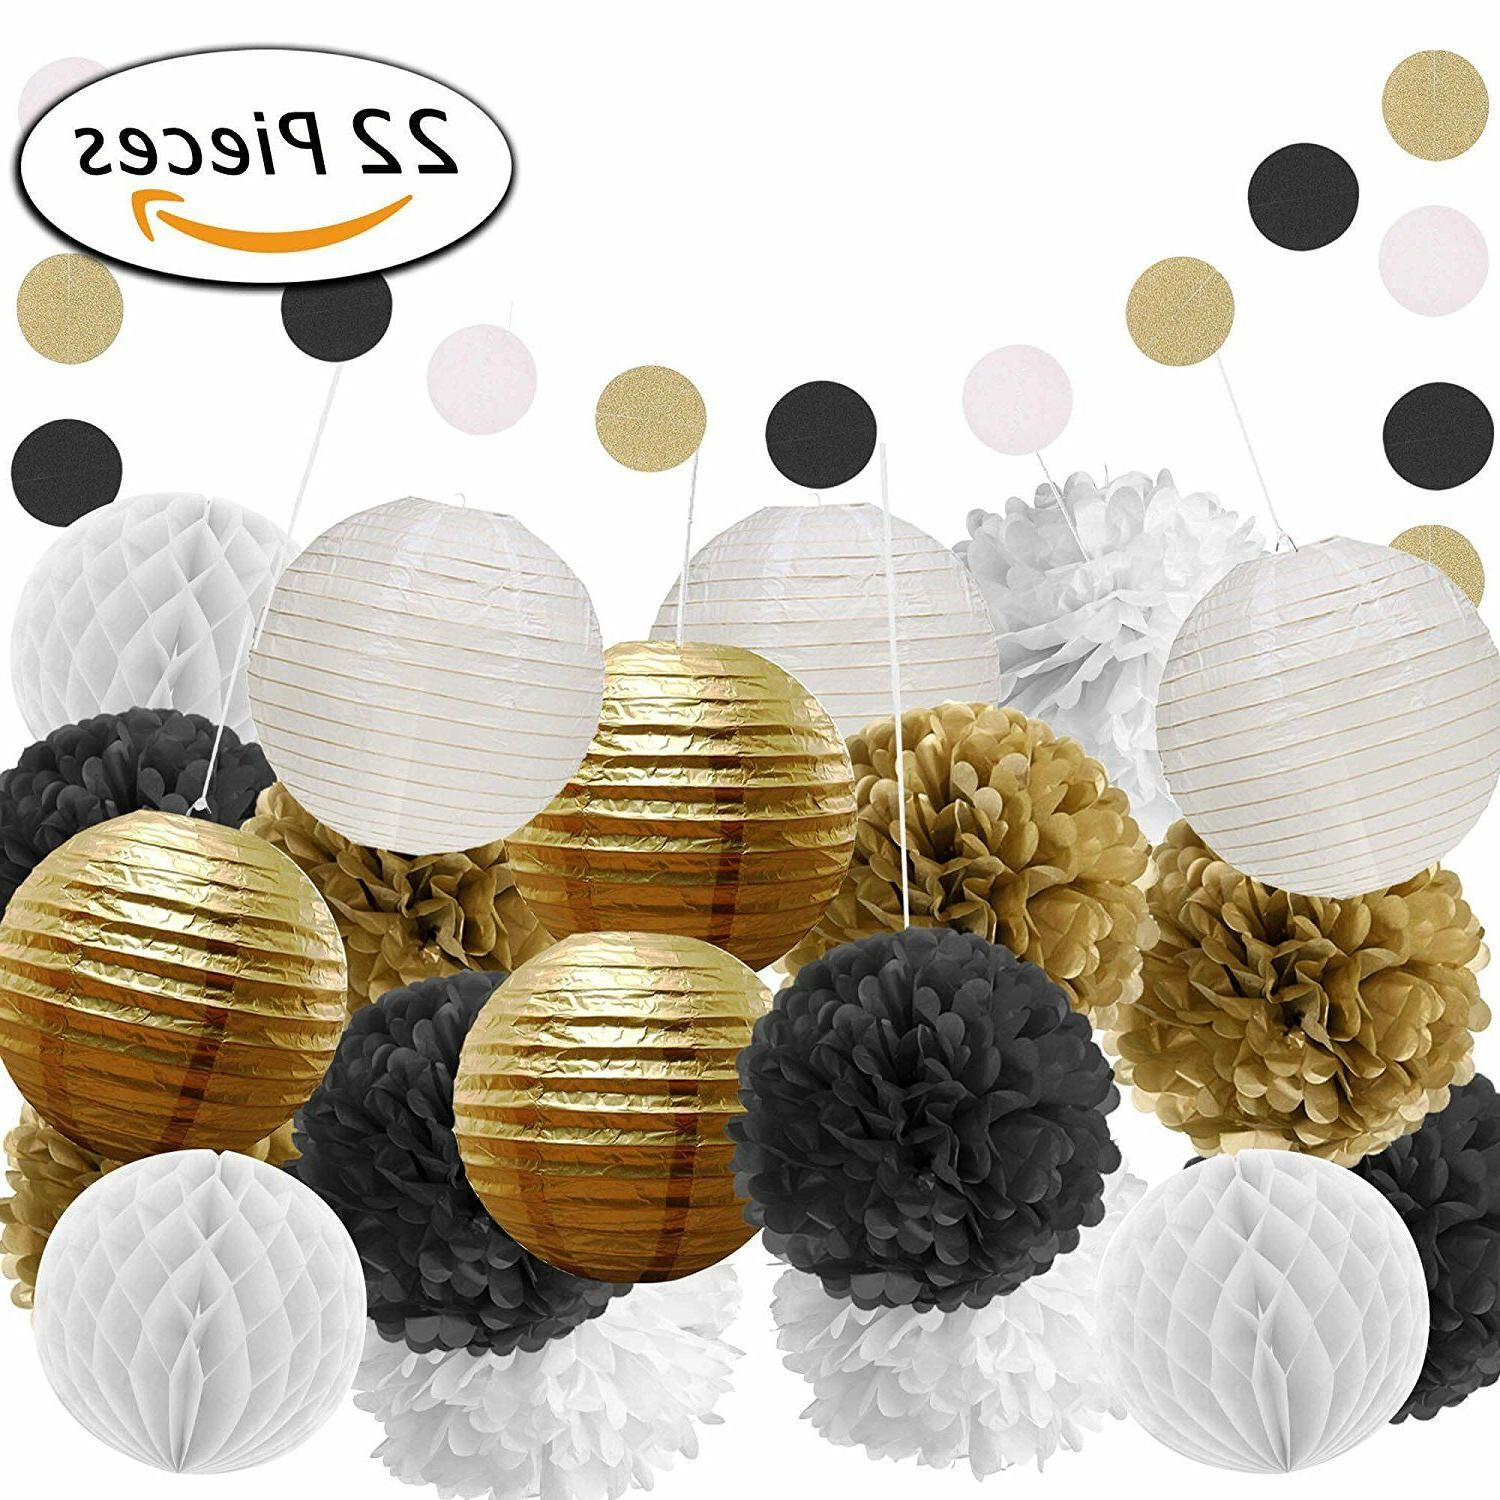 black and gold party decorations for birthday